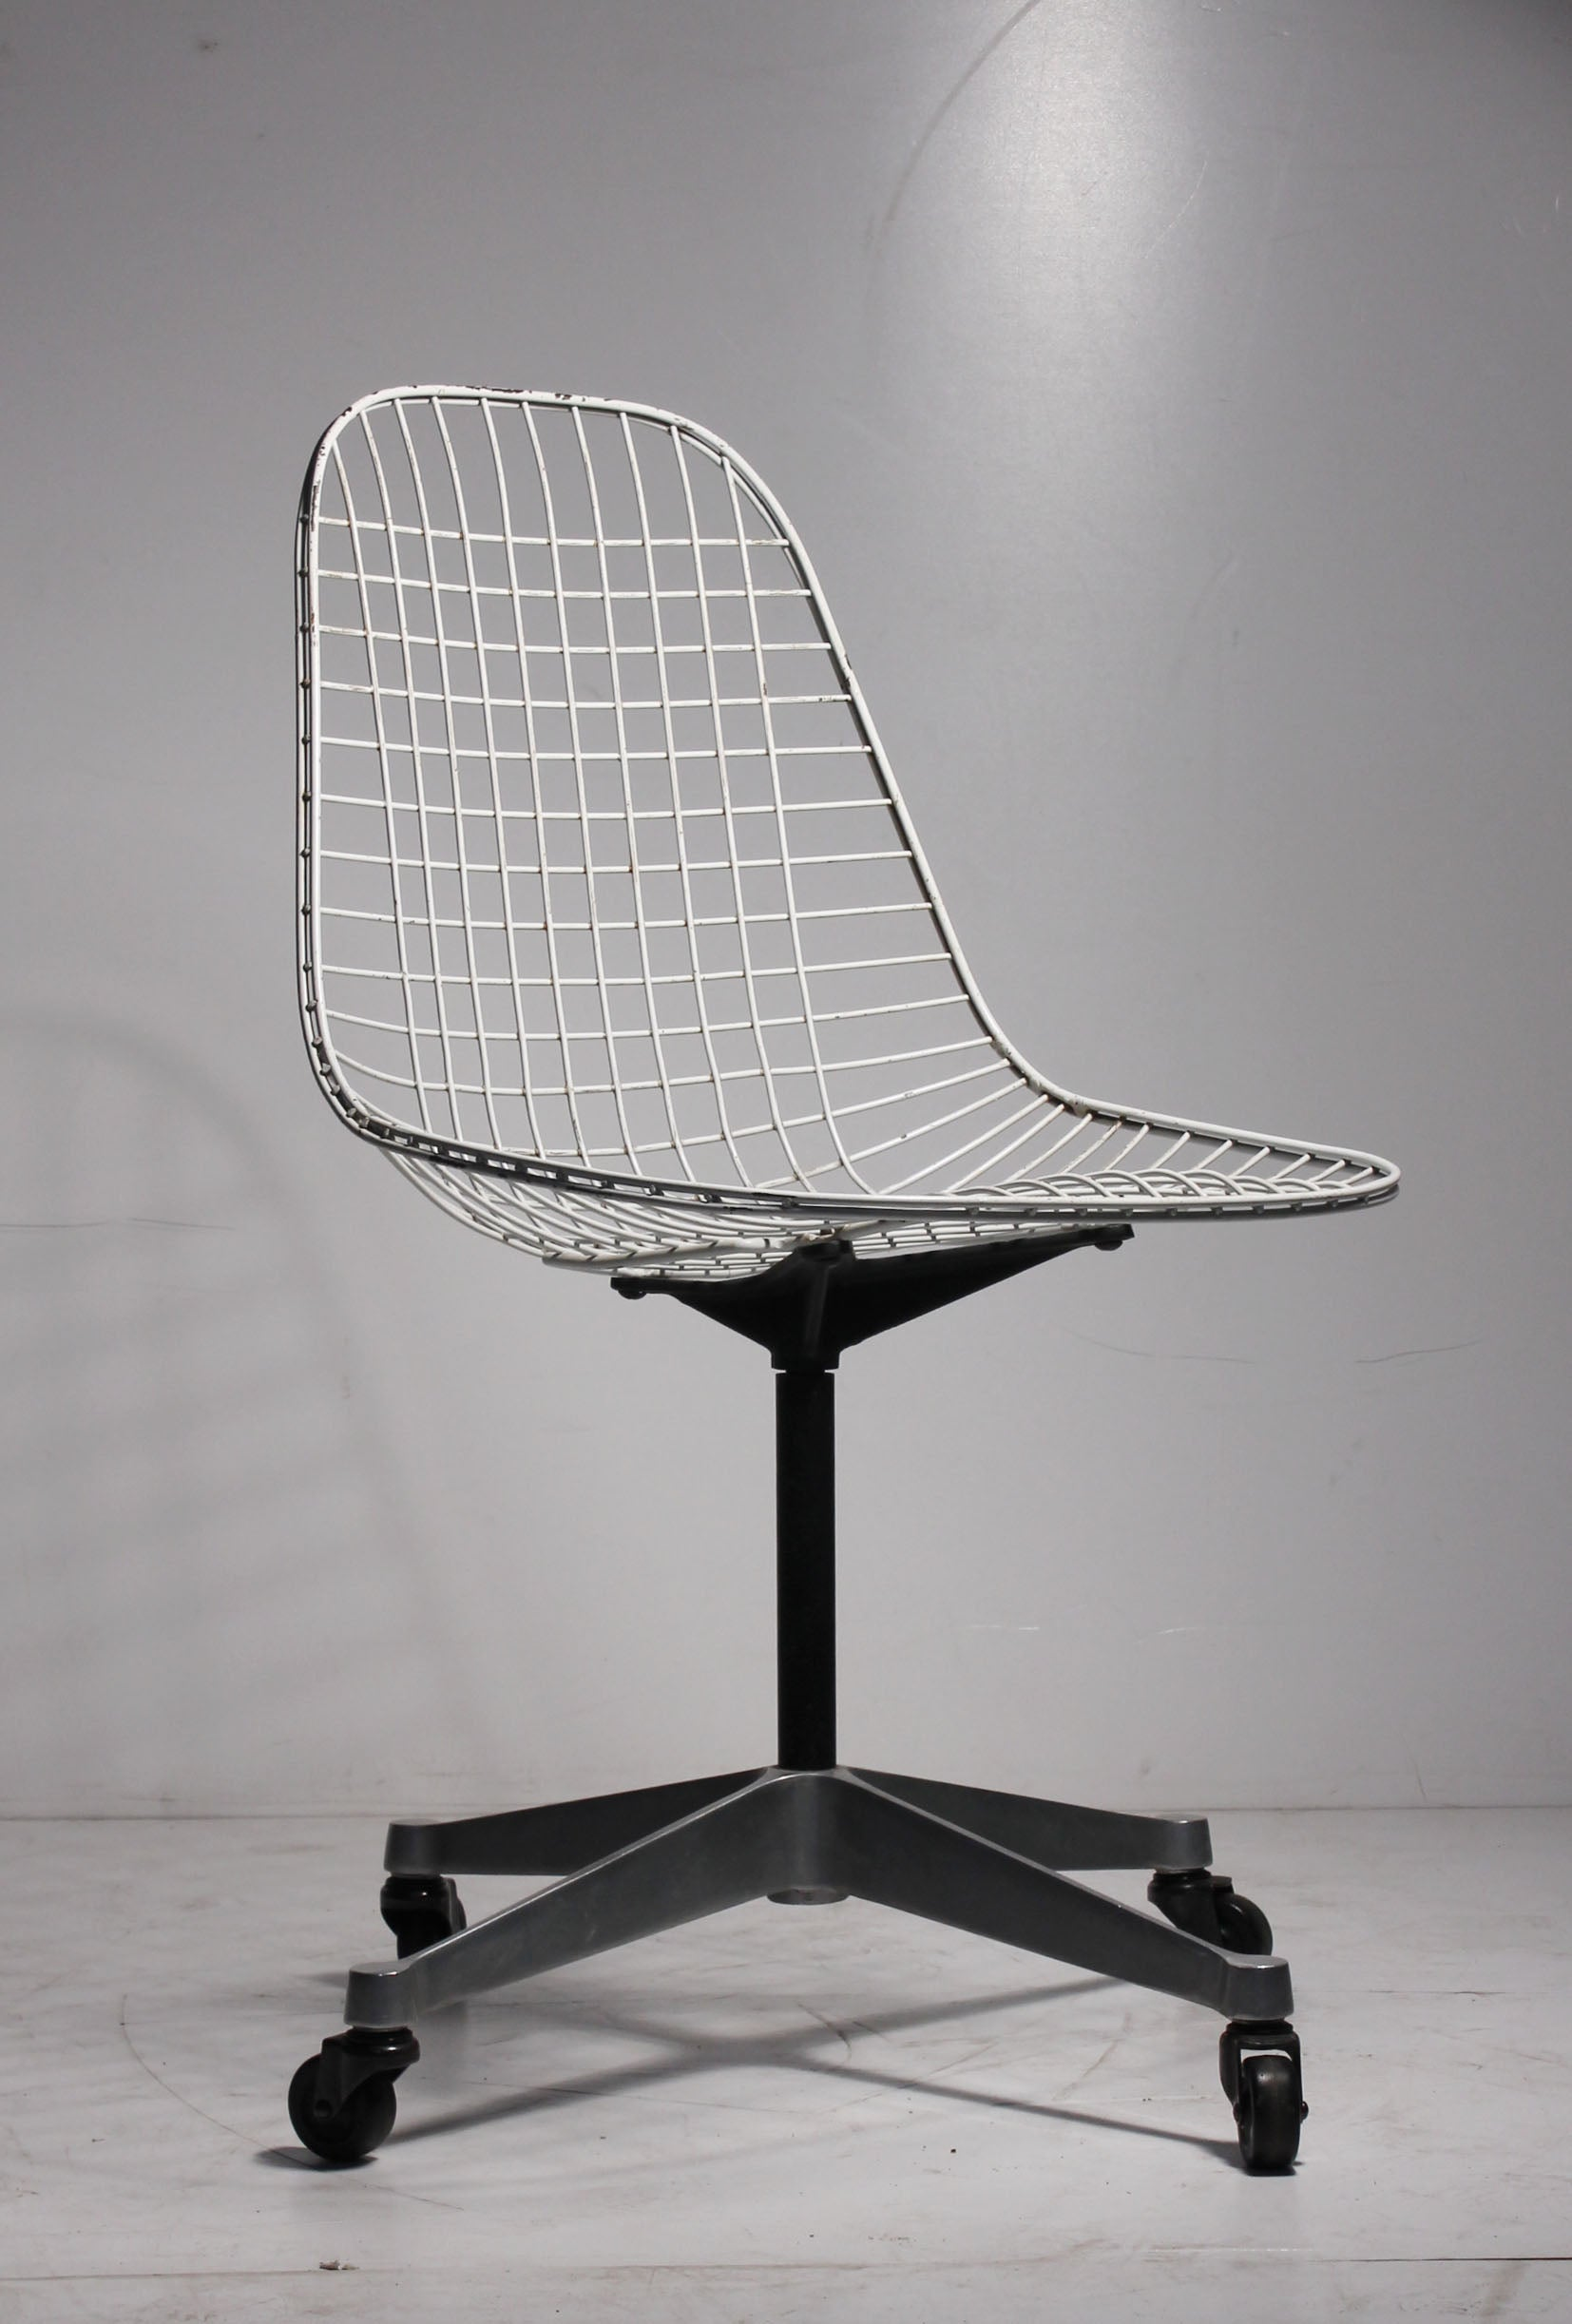 Genial Early Charles Eames PKC Wire Rolling Task Chair For Herman Miller At 1stdibs